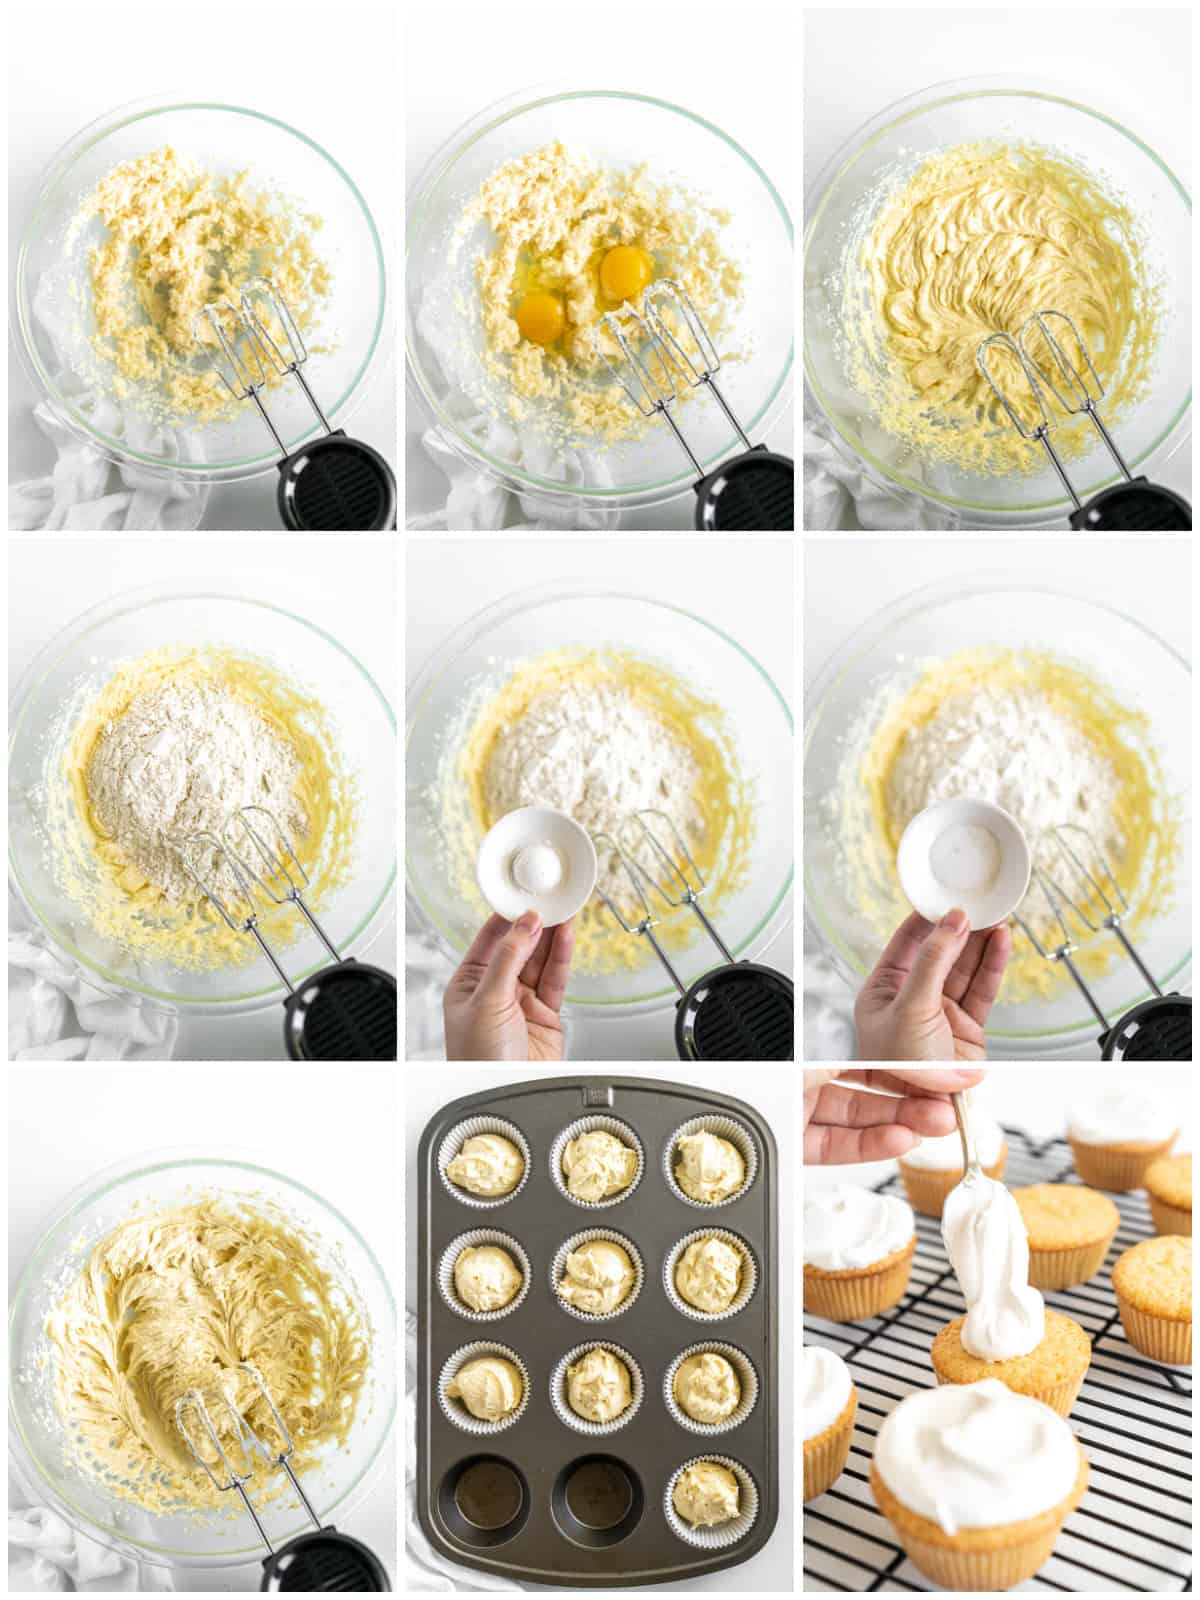 Step by step photos on how to make Pound Cake Cupcakes